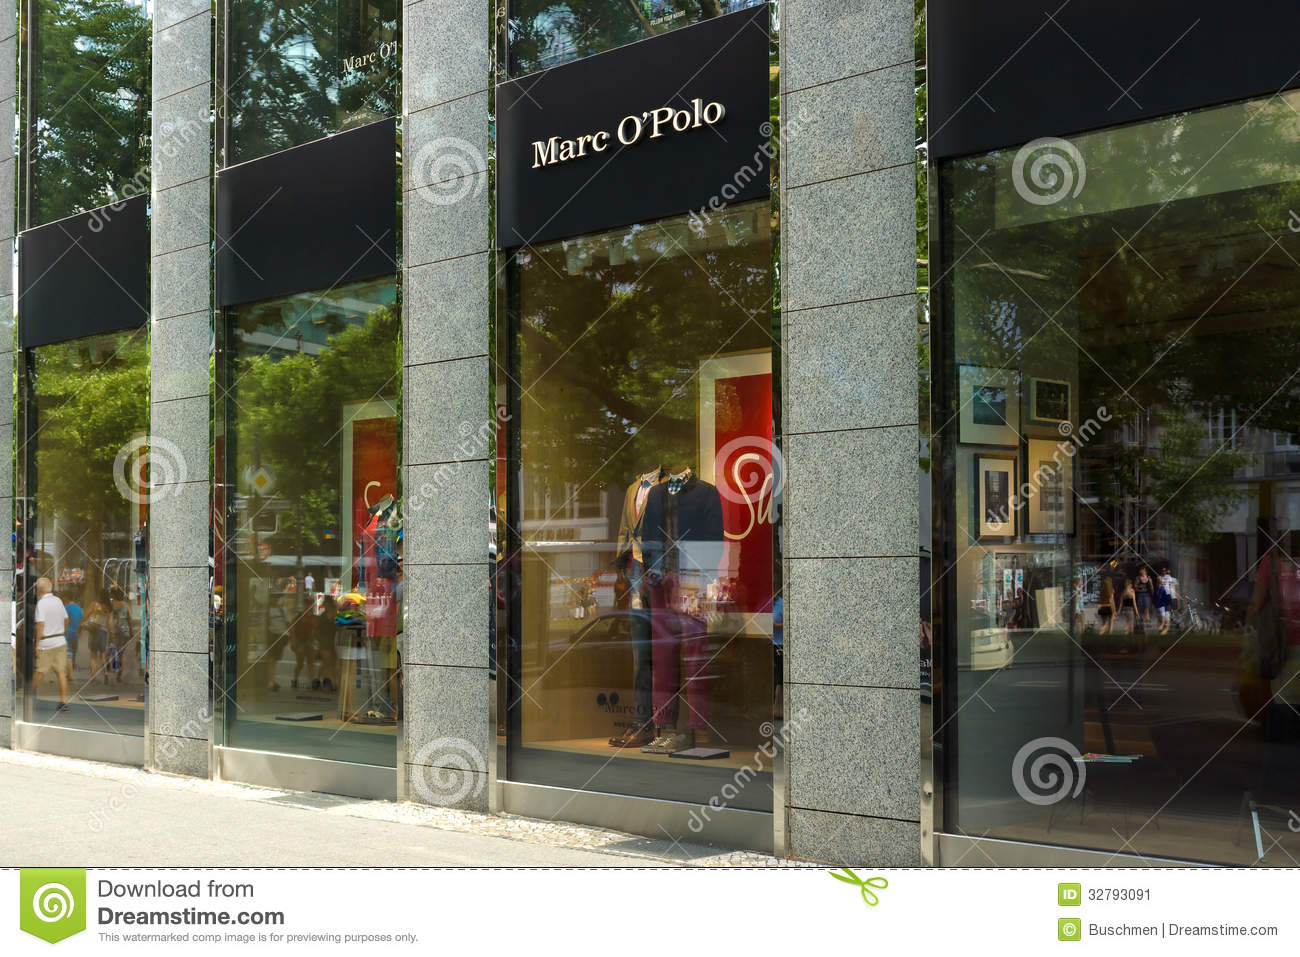 918b69748 BERLIN - AUGUST 03  Boutique Marc O Polo on Kurfuerstendamm. Marc O Polo is  a German clothing brand of Swedish heritage with annual revenues of 404  million ...